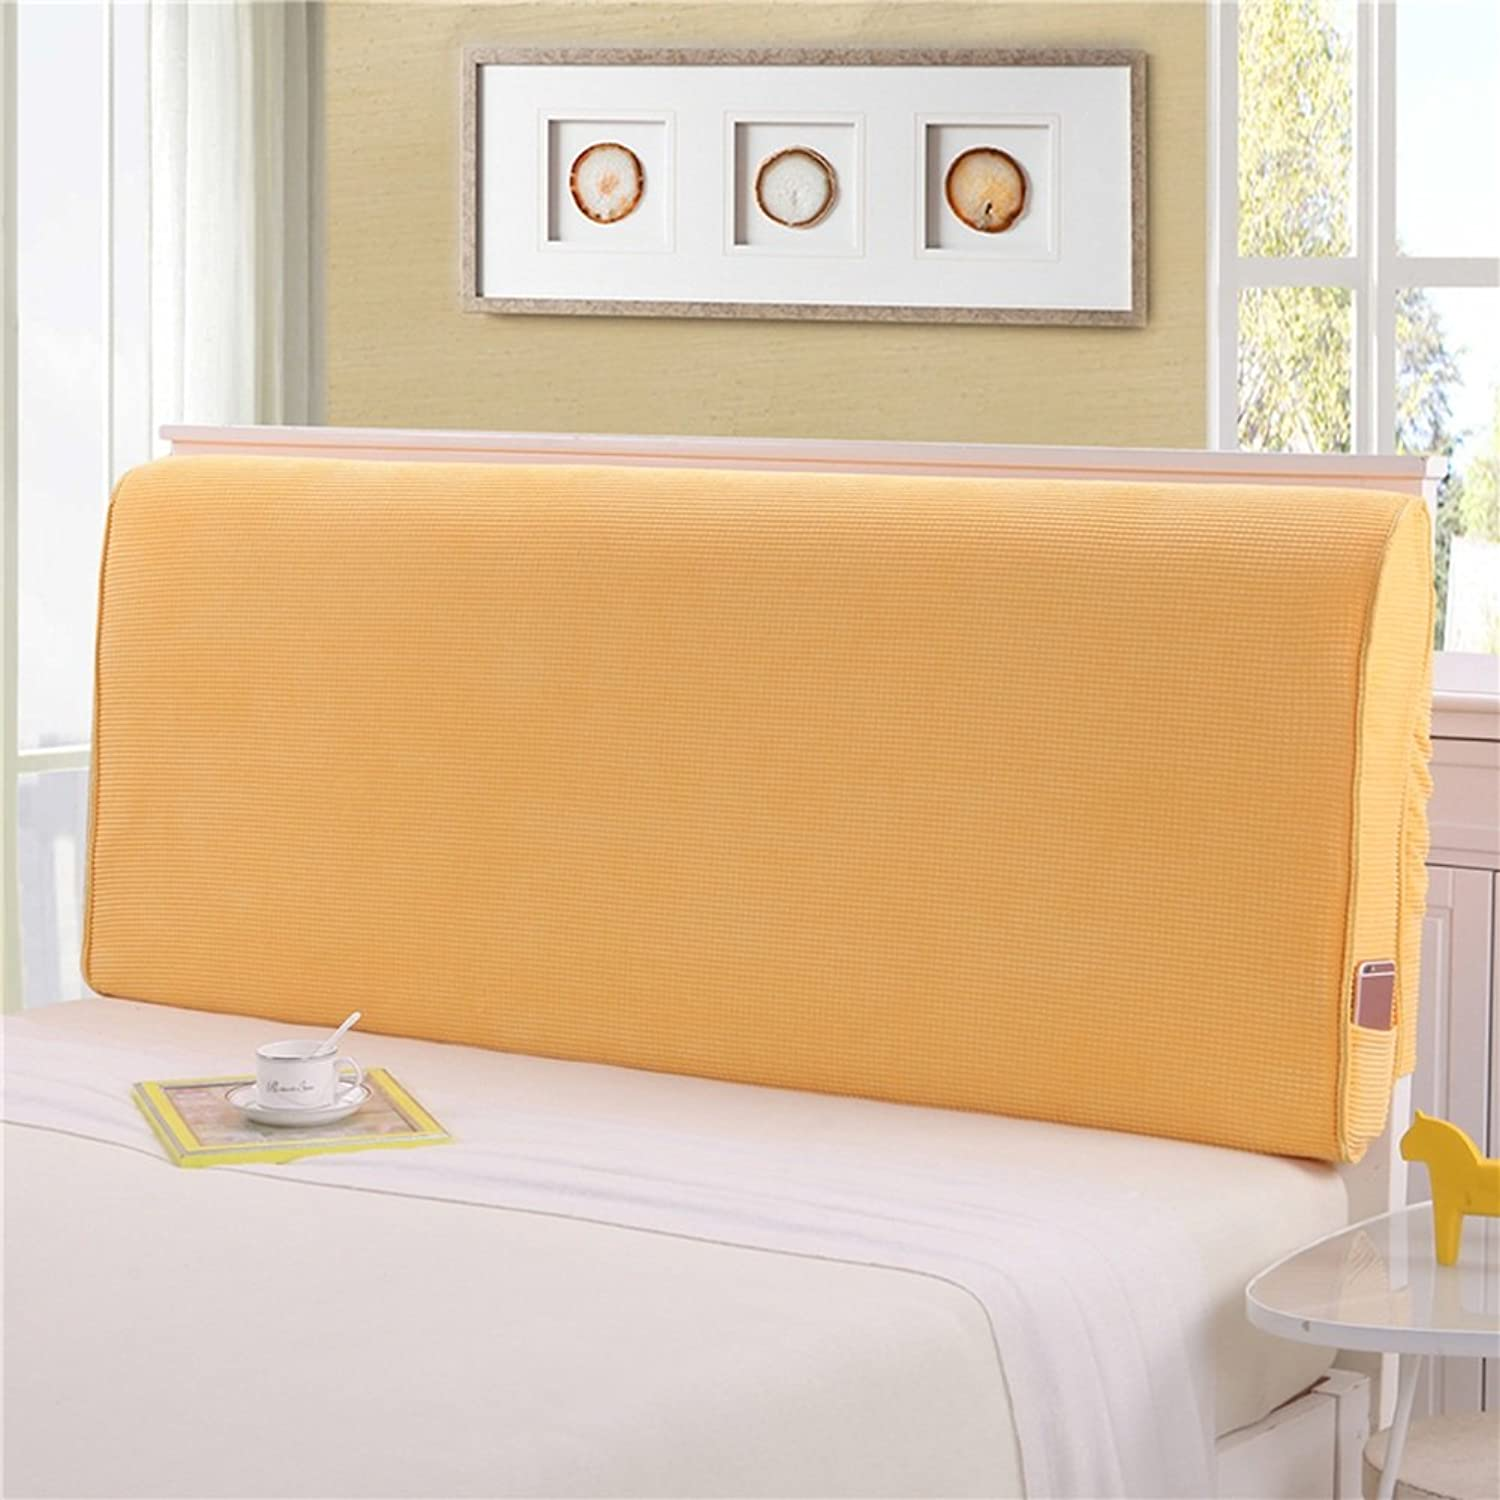 WENZHE Upholstered Fabric Headboard Bedside Cushion Pads Cover Bed Wedges Backrest Waist Pad Double Bed Large Back Sofa Pillow Washable Breathable Do Not Collapse, There Is Headboard   No Headboard, 5 colors, 4 Sizes ( color   4  , Size   With headboard-1